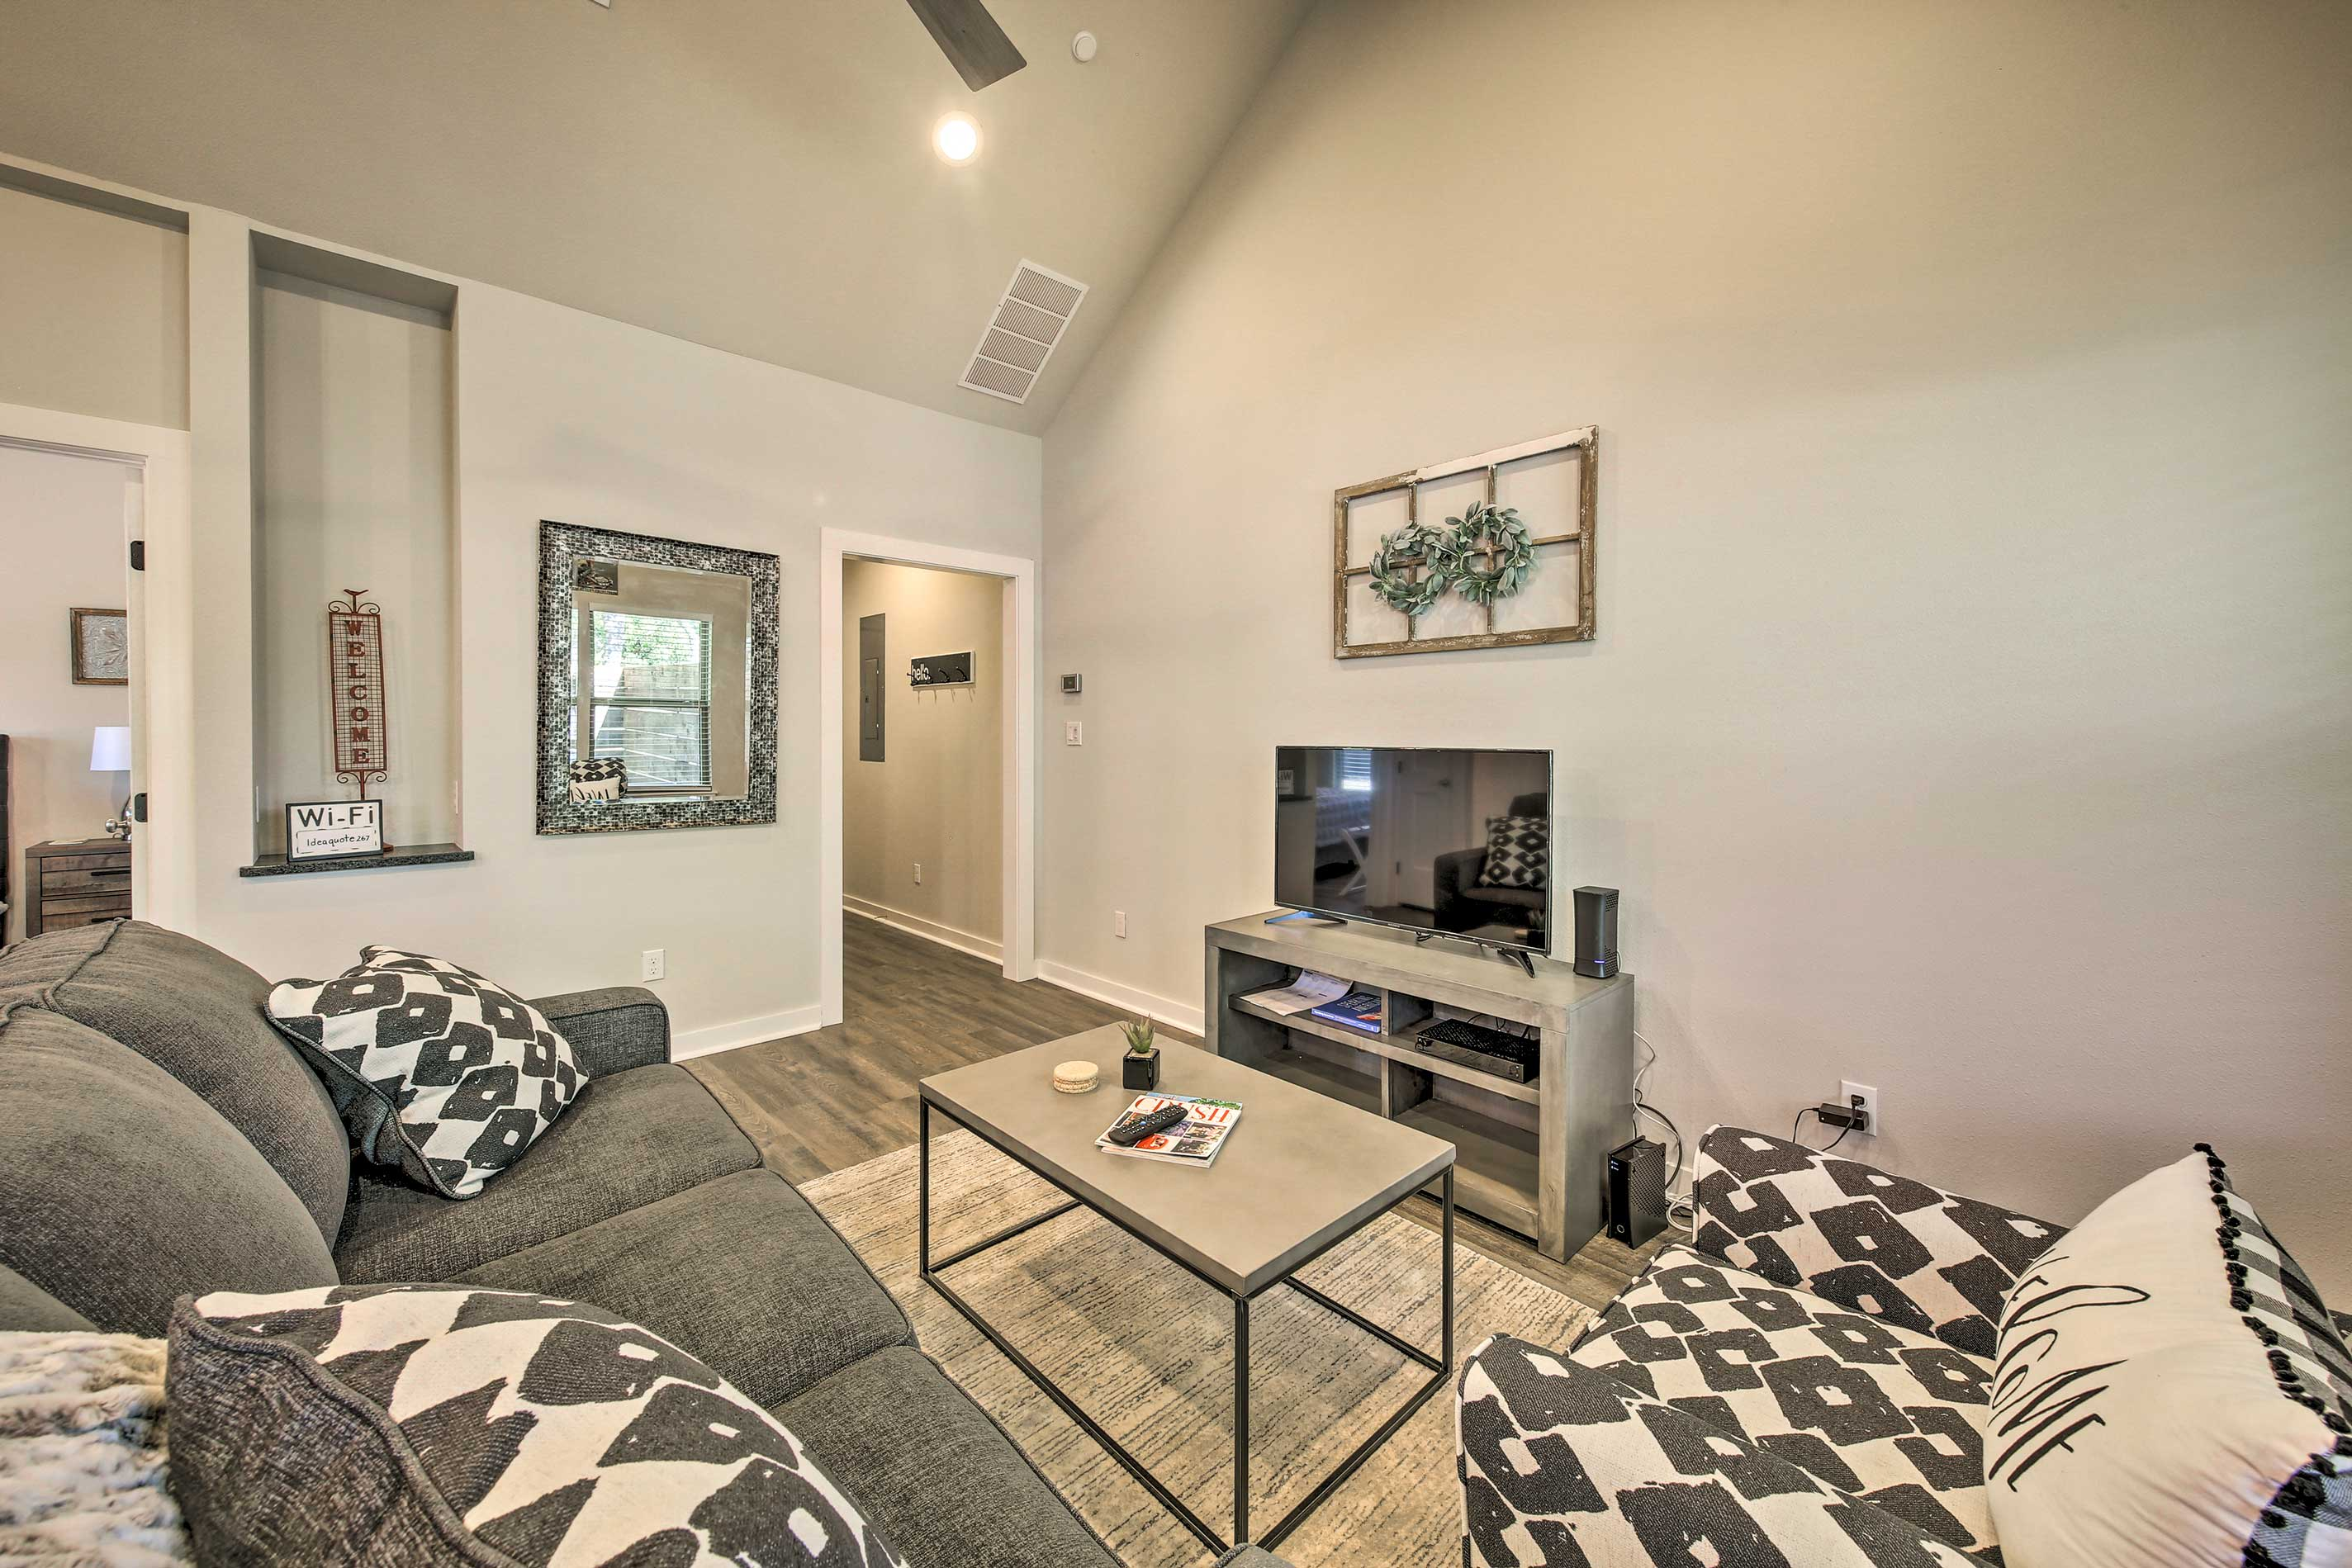 The space includes a flat-screen cable TV, couch and matching armchair.